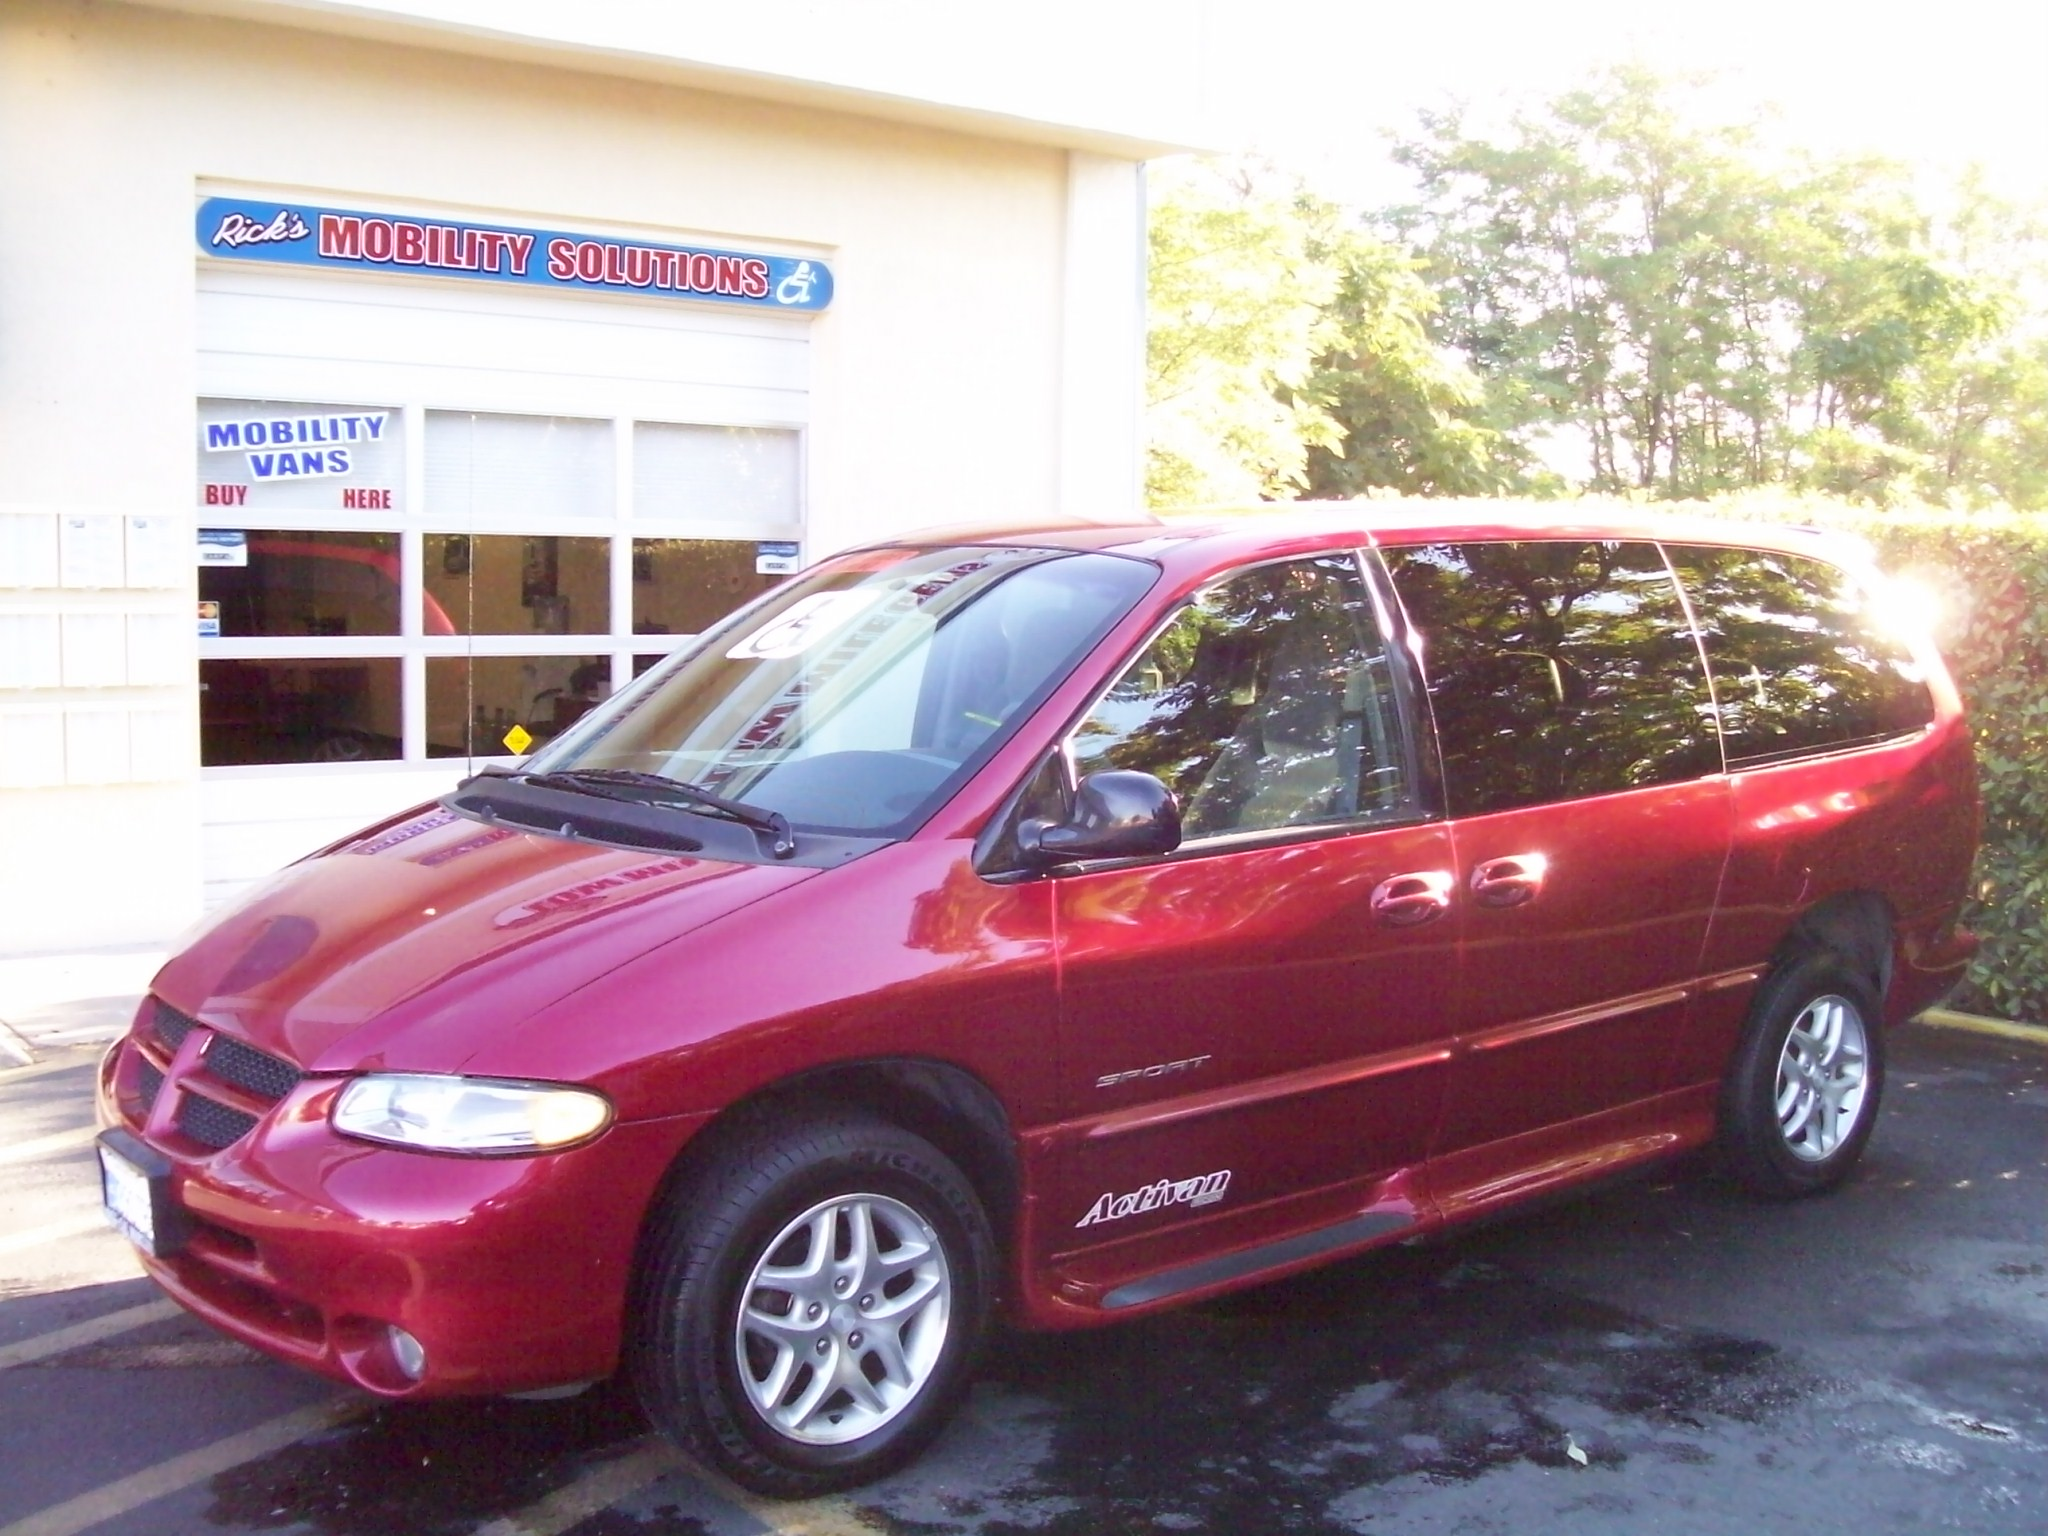 1999 dodge caravan ricon braun activan 68 000 miles current price 13 900 about financing includes warranty